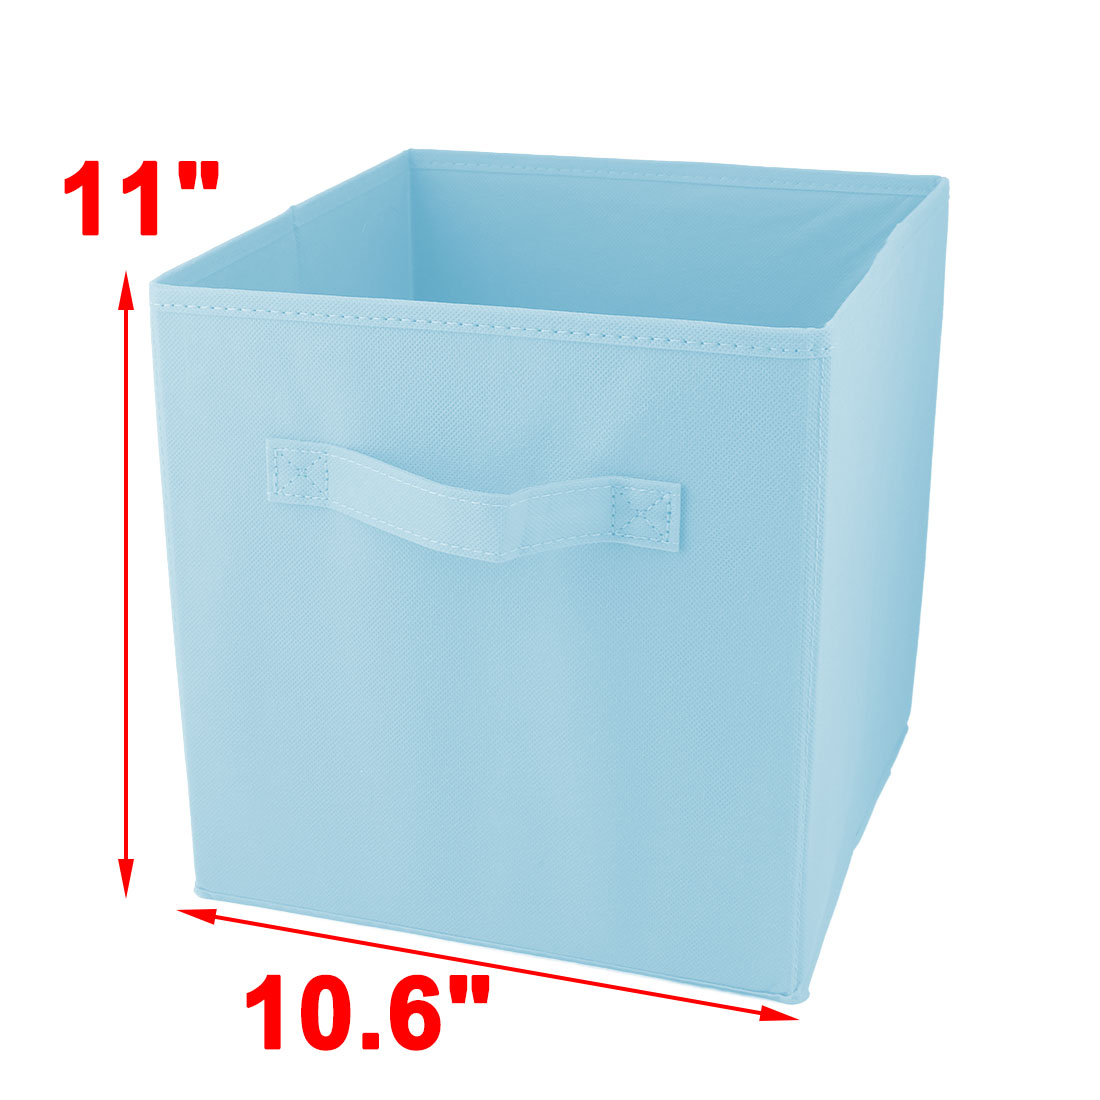 Apartment Non-woven Fabric Foldable Books Cosmetics Holder Storage Box Sky Blue - image 4 of 5